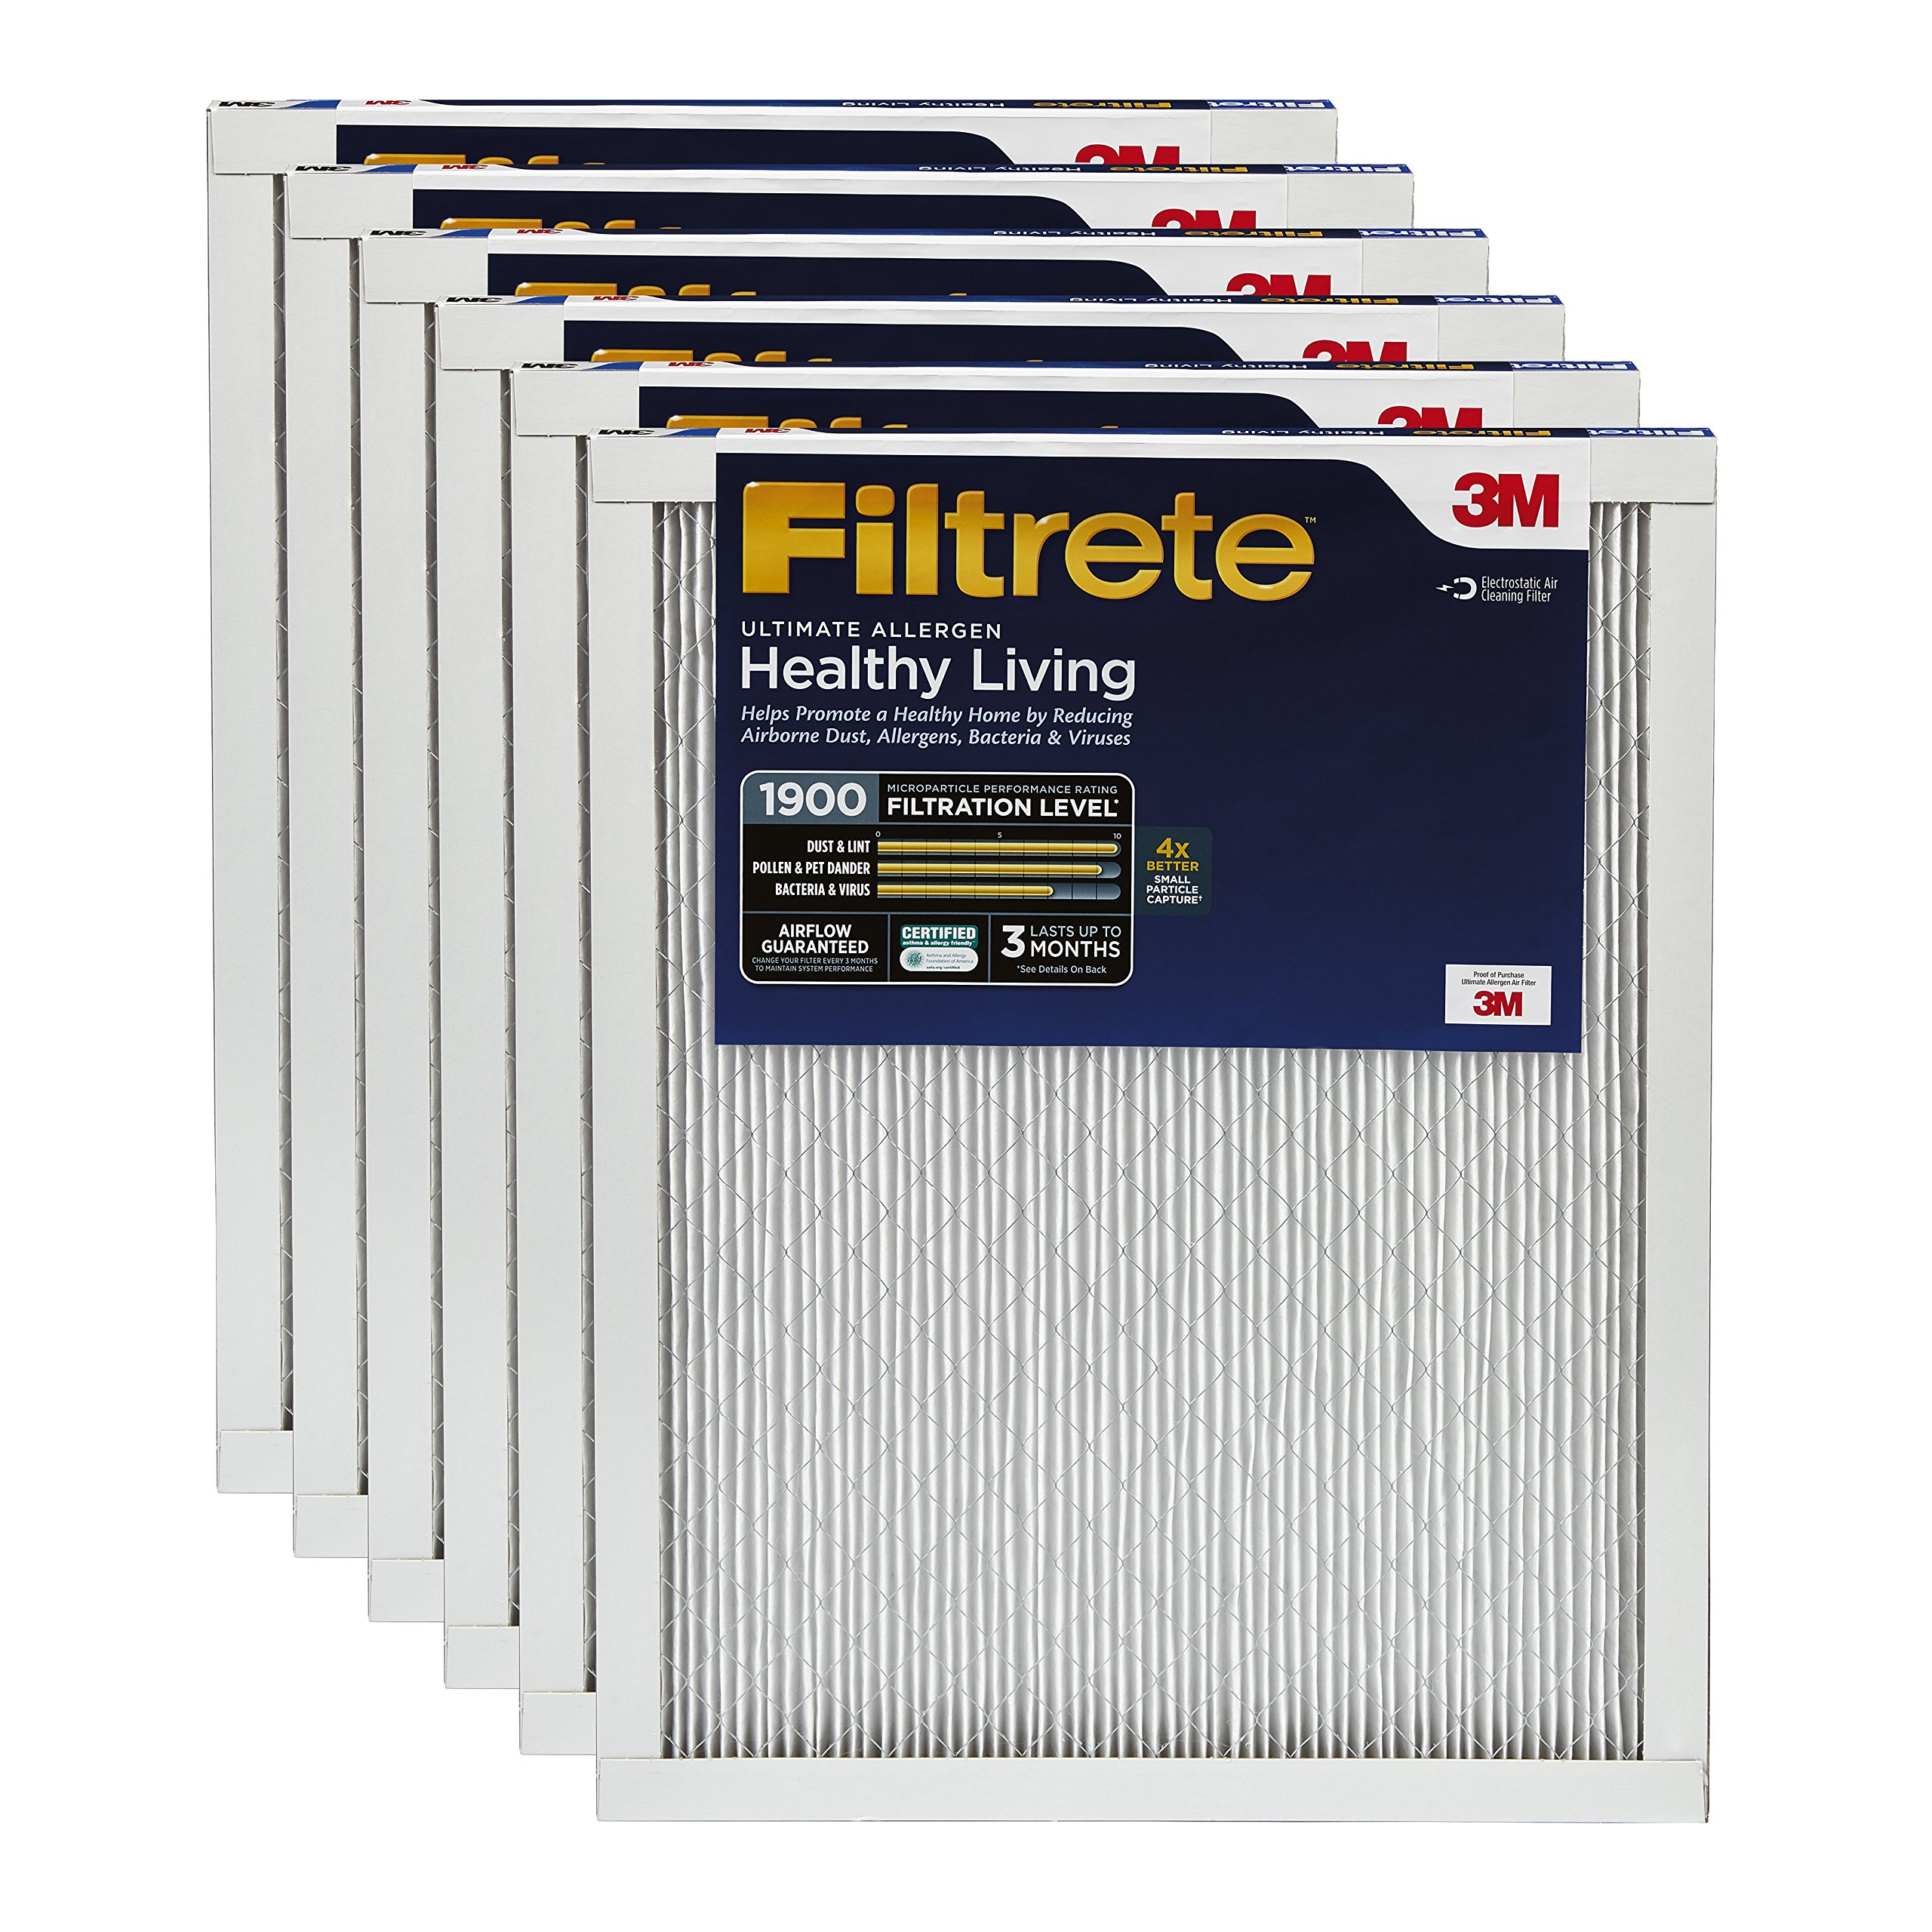 Filtrete MPR 1900 24 x 24 x 1 Healthy Living Ultimate Allergen Reduction AC Furnace Air Filter, Attracts Fine Inhalable Particles, Guaranteed Airflow up to 90 days, 6-Pack